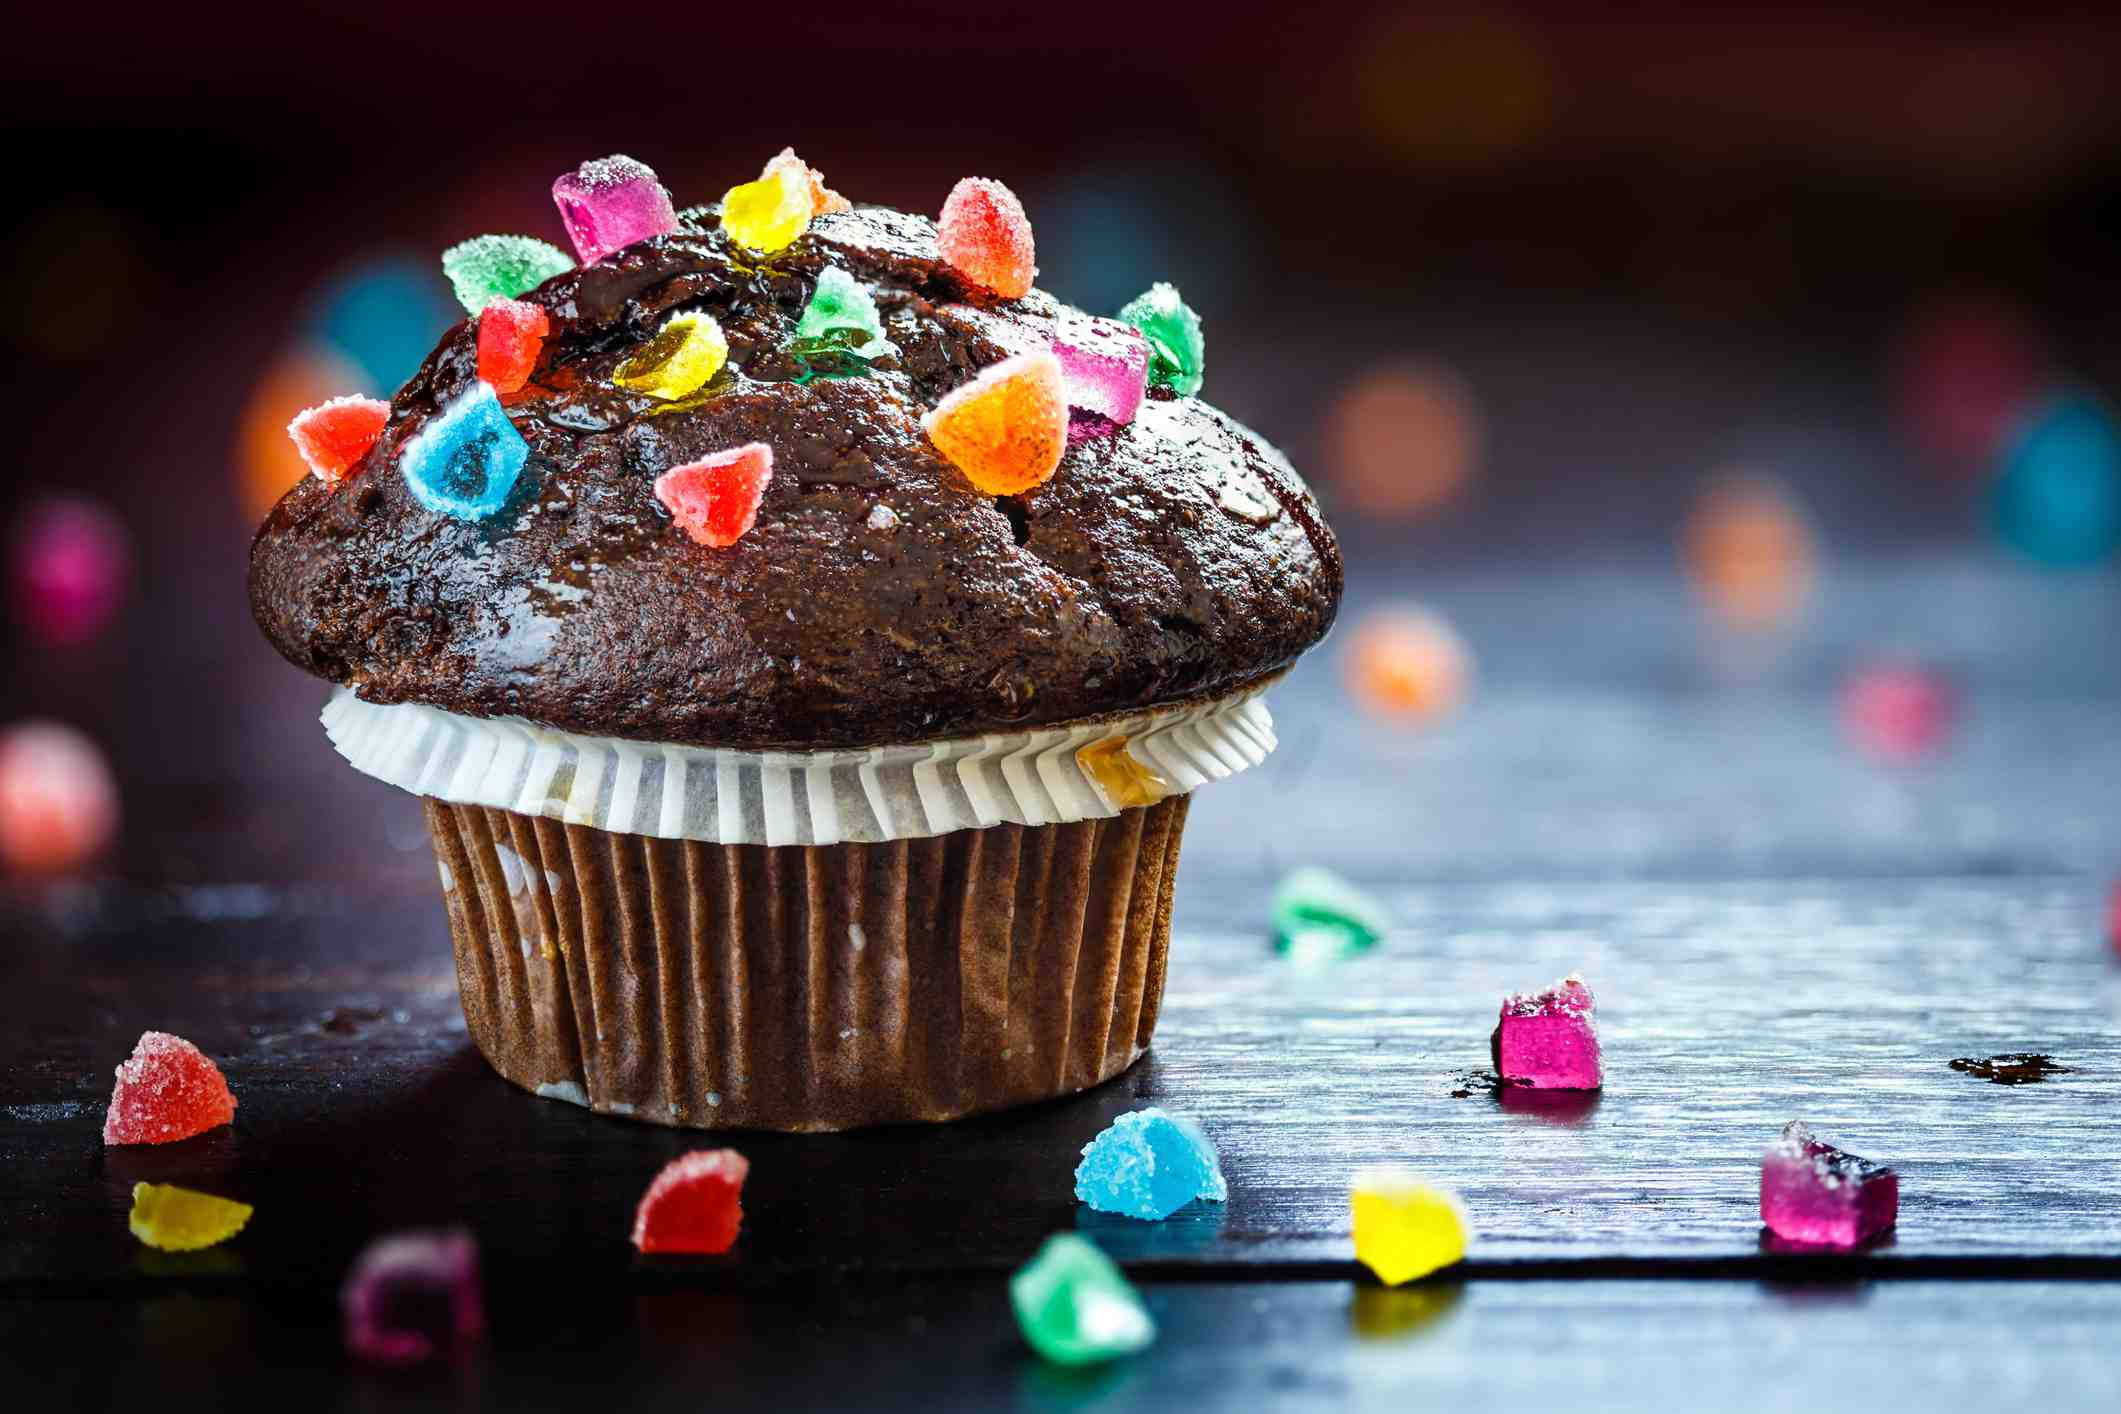 A chocolate cupcake with colorful jelly candies.